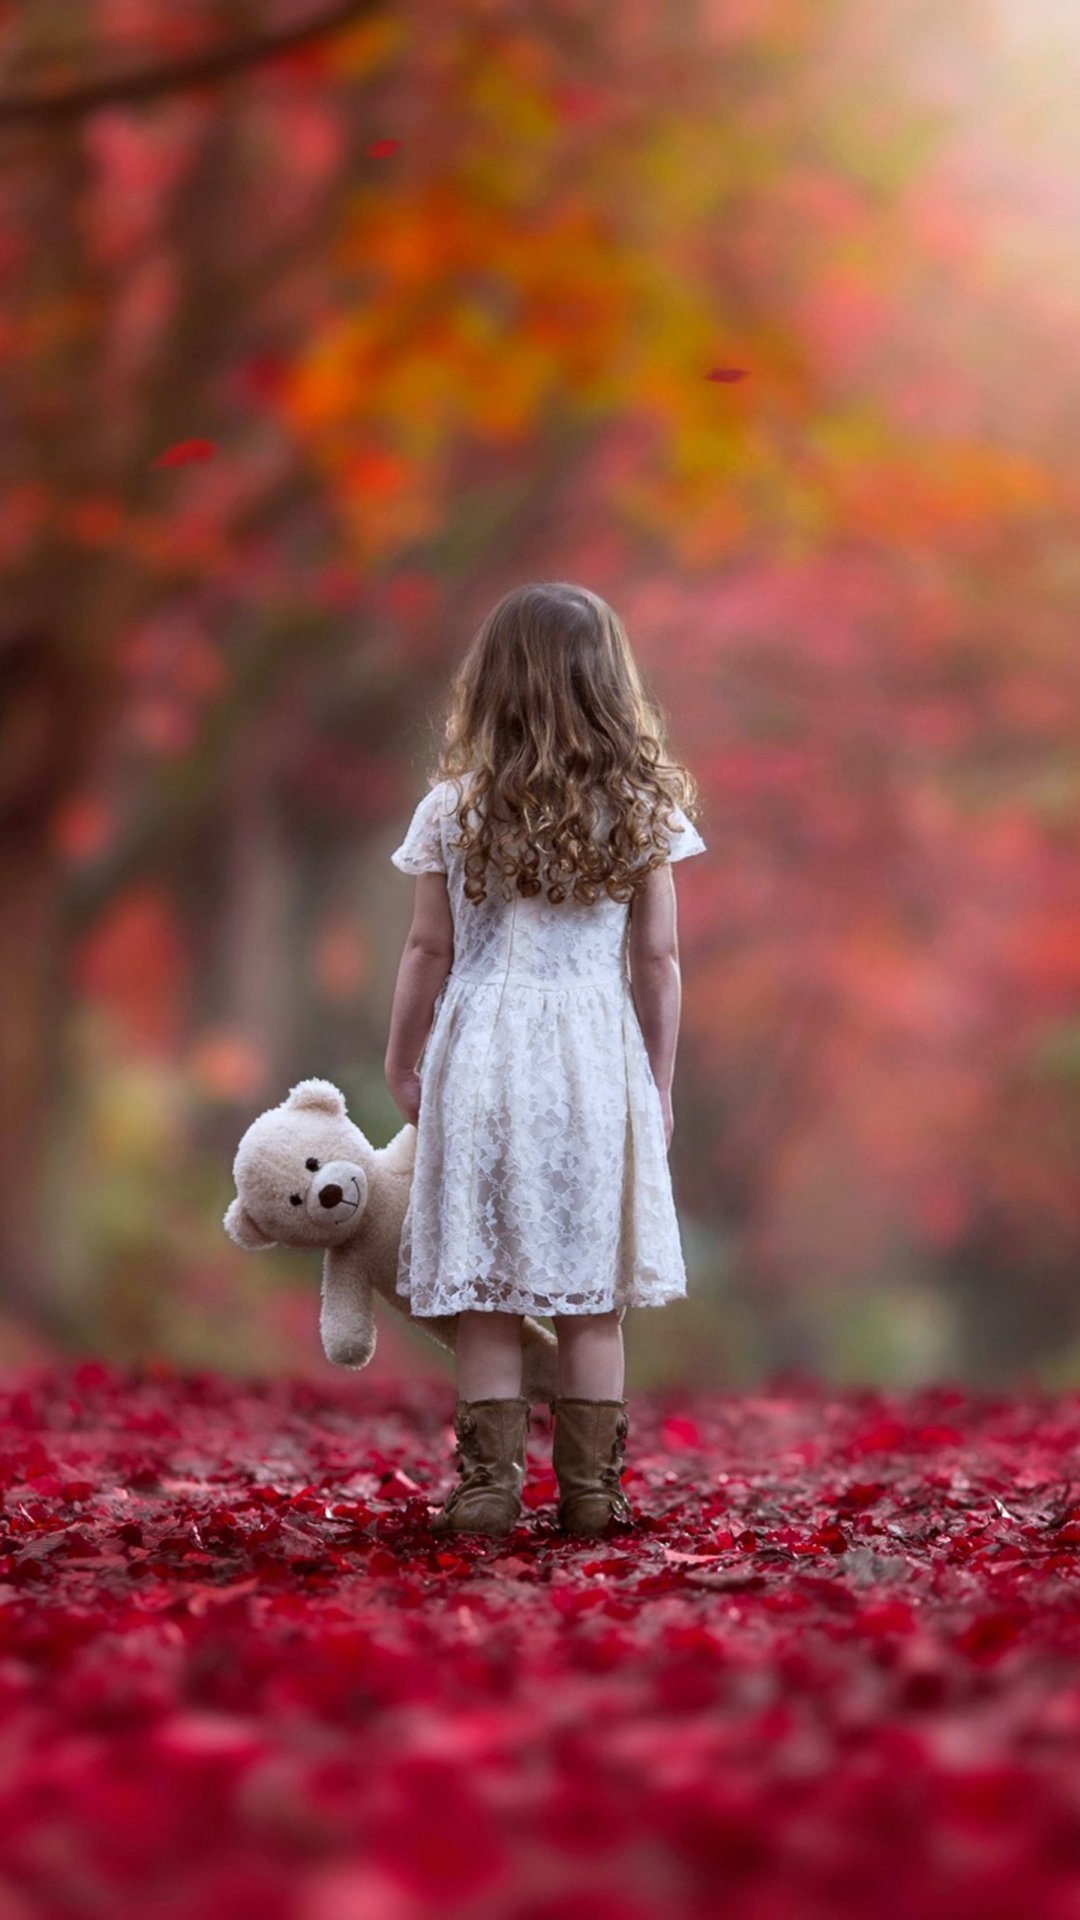 Cute Wallpapers For Girls In The Fall Autumn Sad Lonely Little Girl Wallpapers 1080x1920 328006